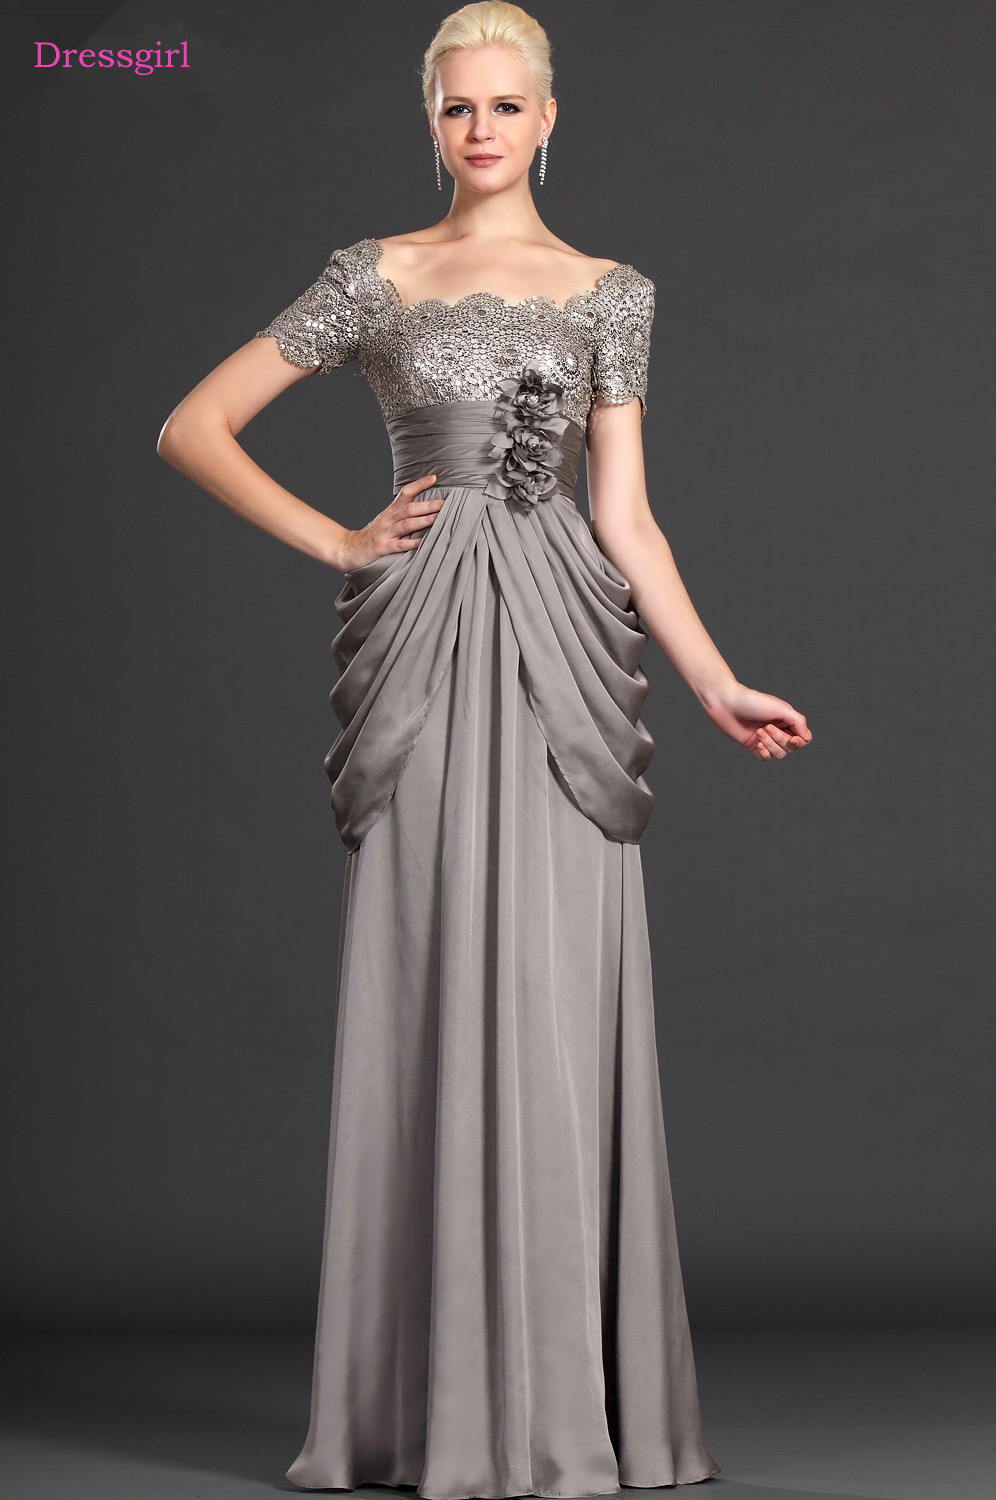 Gary 2019 Mother Of The Bride Dresses A-line Cap Sleeves Chiffon Lace Flowers Long Elegant Groom Mother Dresses Wedding